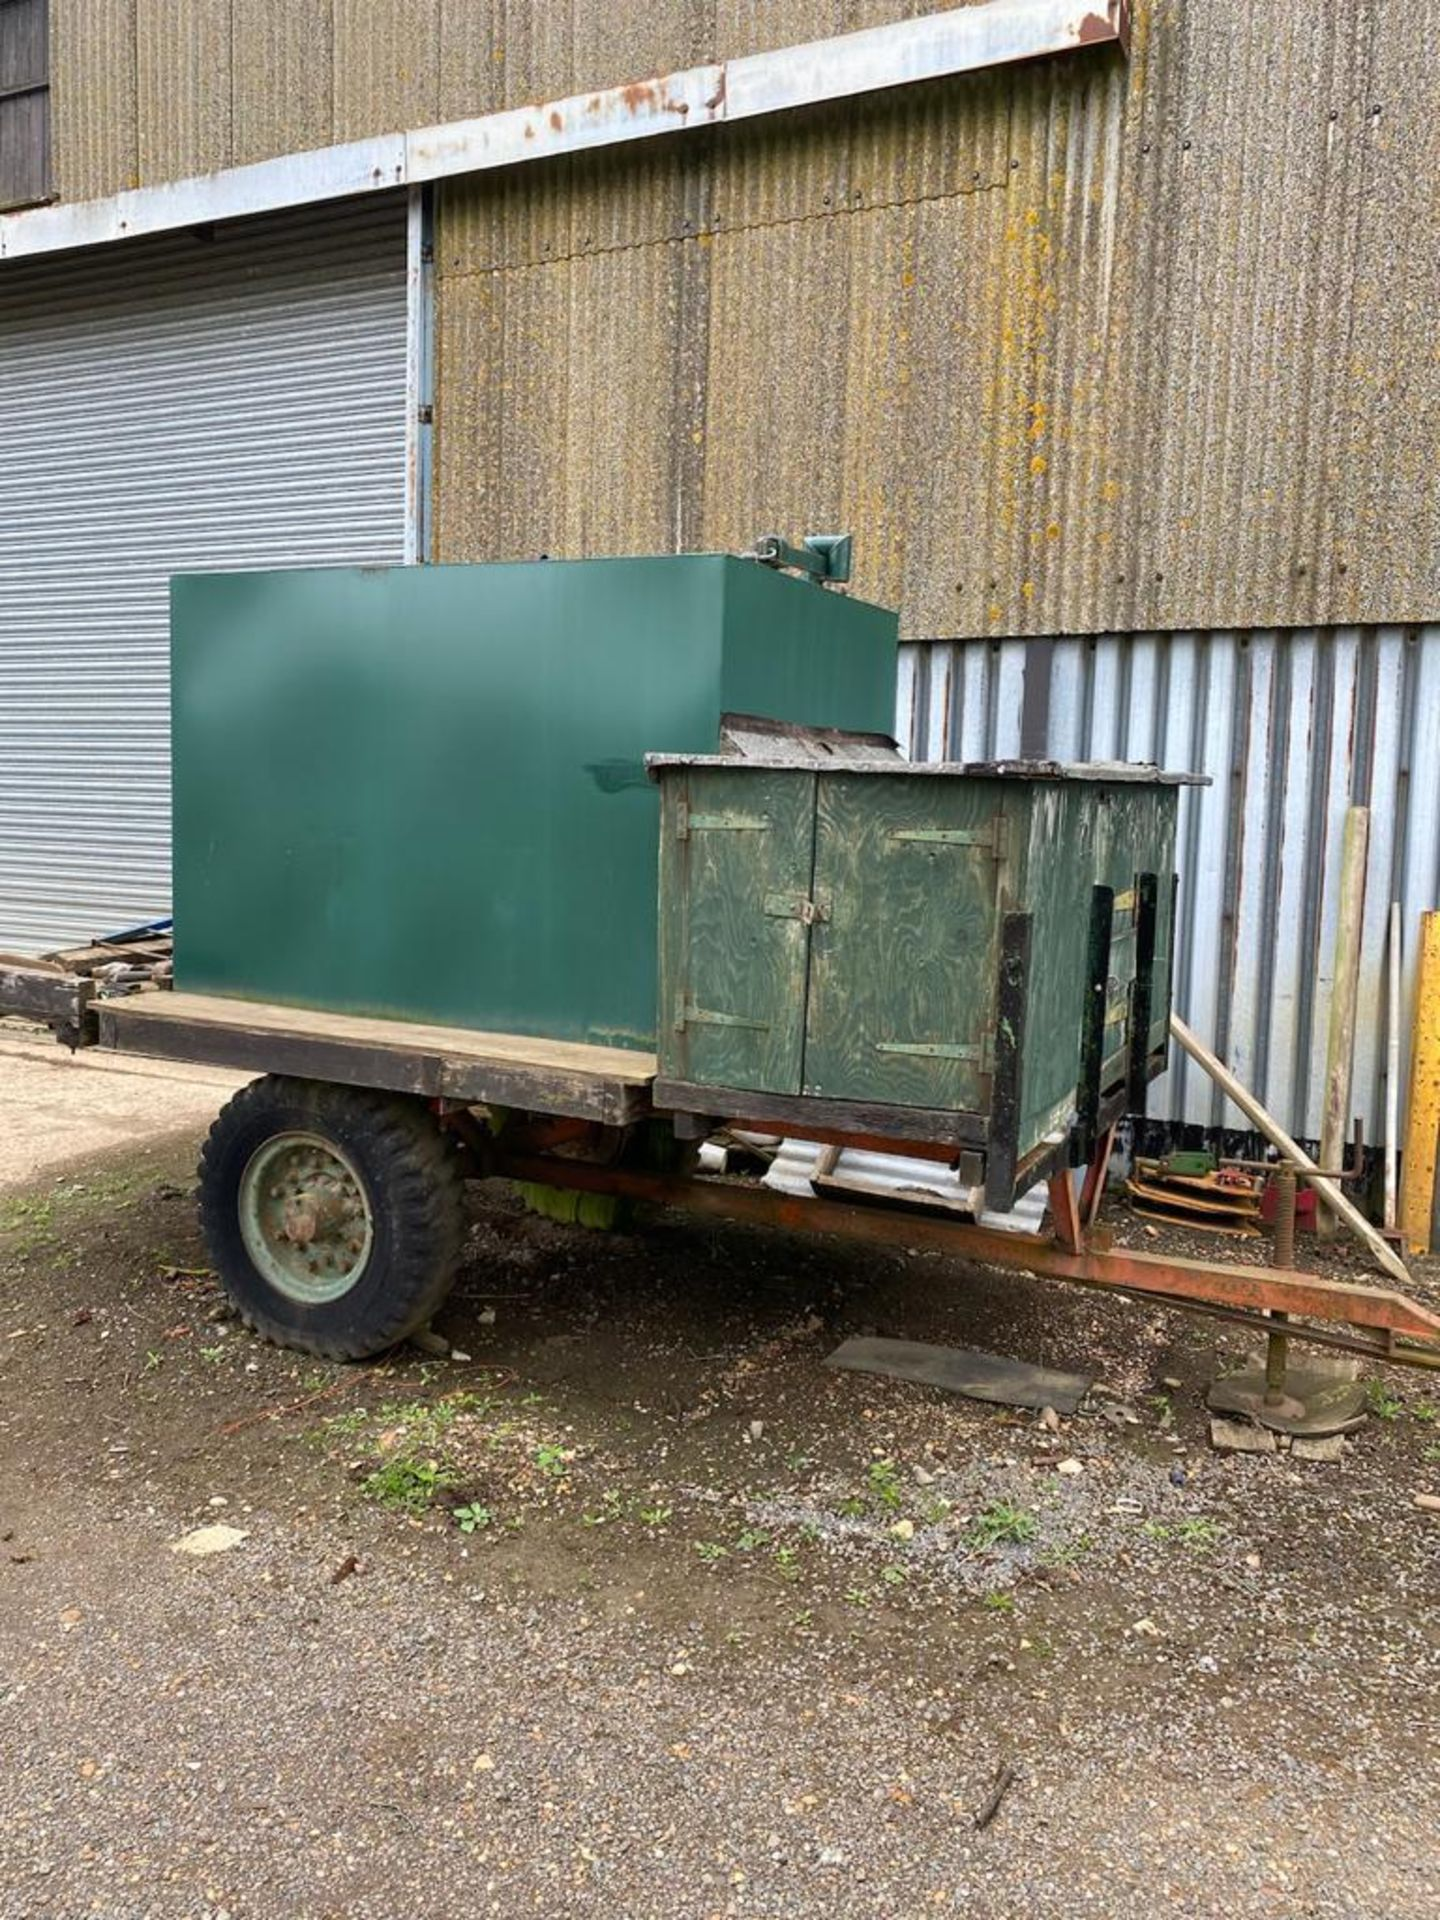 10 ft single axle trailer, metal floor with 800gal metal tank and 12v electric pump - Image 7 of 7